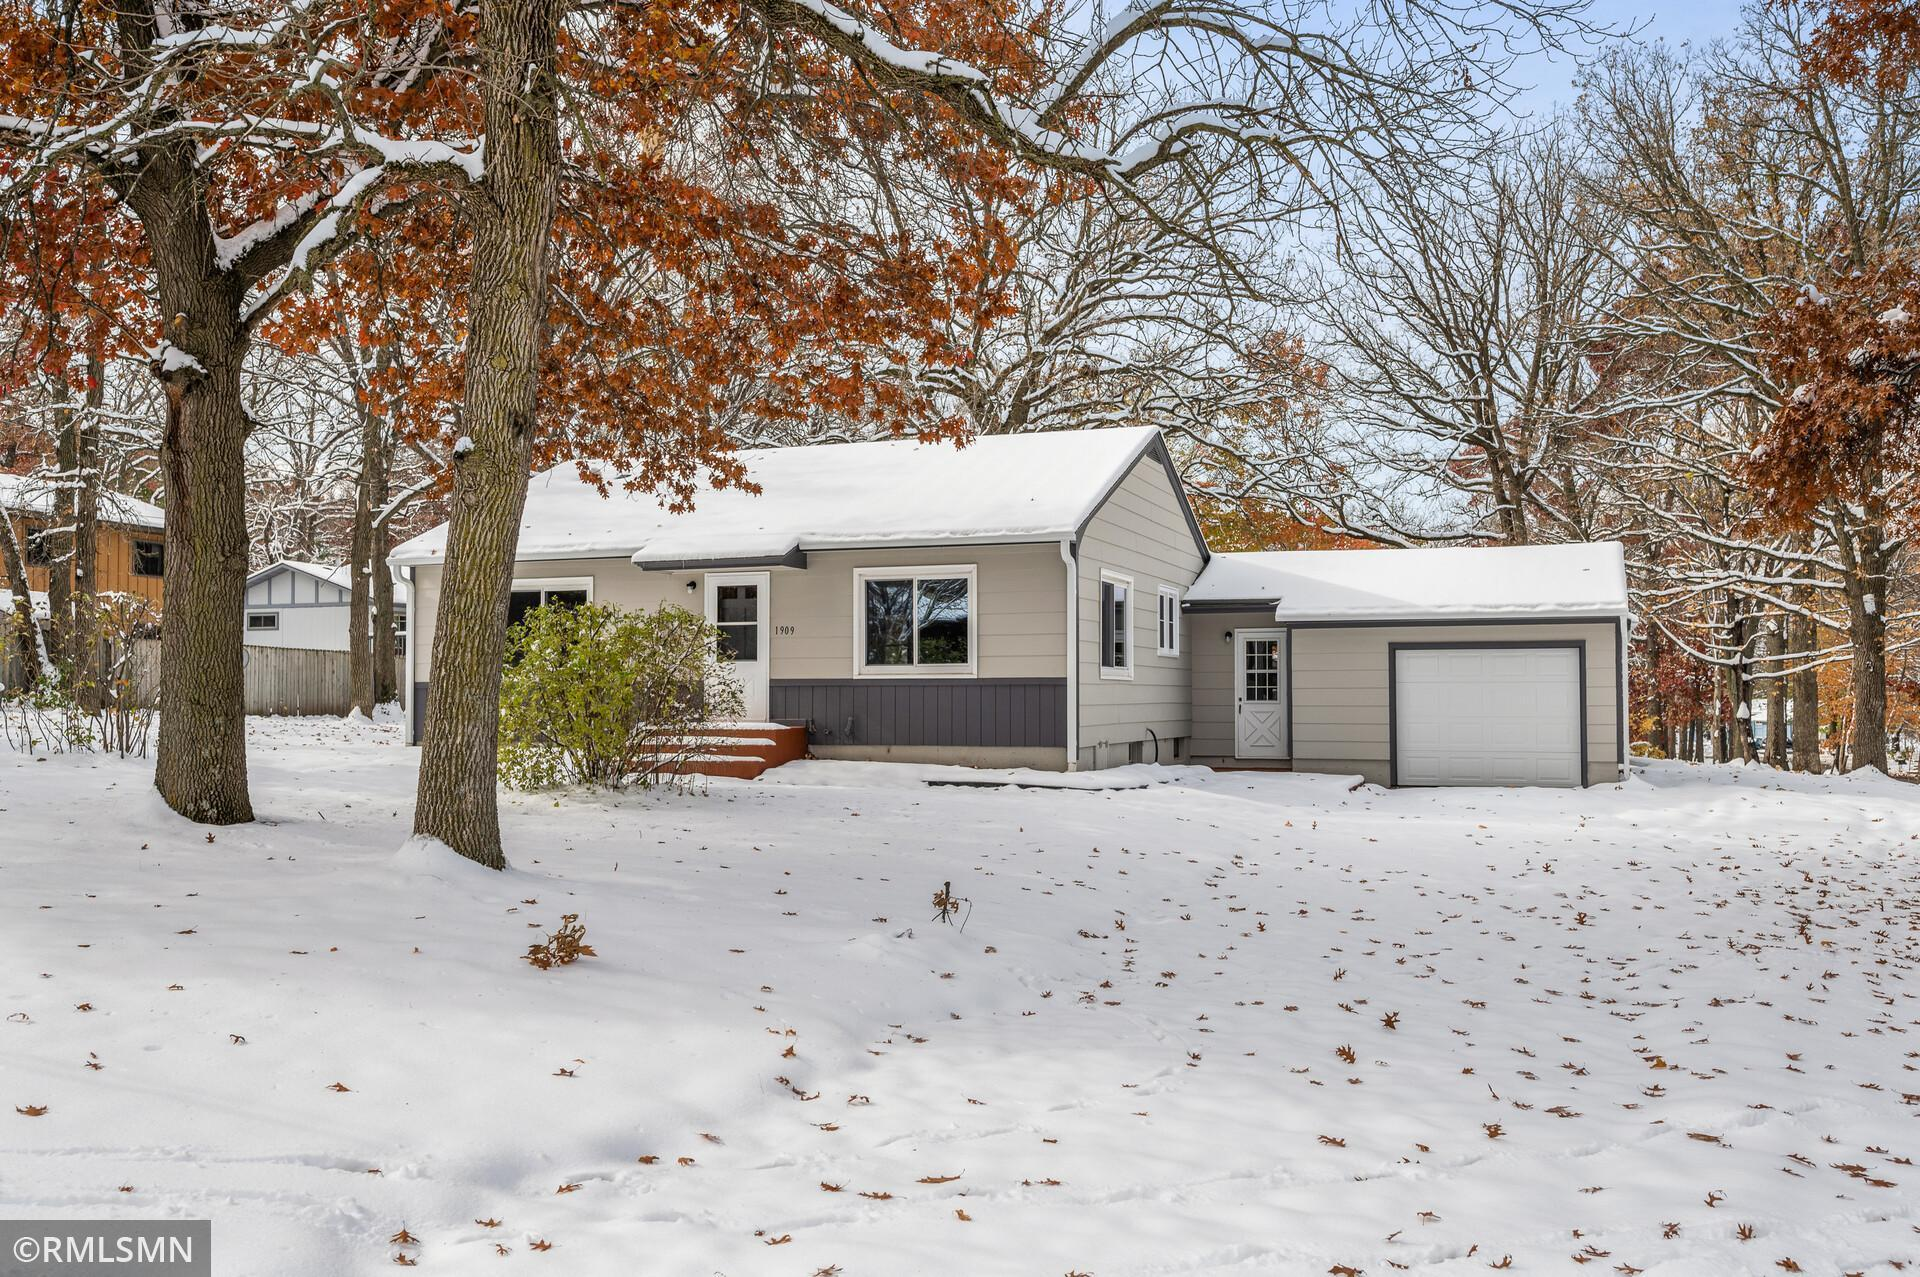 Beautifully remodeled one story home nestled on a mature, nearly half acre lot! This home features the ambiance of newness with a new roof, new furnace/ AC, custom paint, new carpet/ floor covering/ refinished hardwoods, new SS appliances, a vast amounts of storage space in the basement and so much more! Bask in natural light indoors or relish exterior living amidst the surrounding yard space all year long! This property is close to a number of city parks, highway access, Boulder Ridge Golf Club, St. Cloud State University, St. Cloud VA Health Care System, Quarry Park Scientific and Natural Area and is local to the plethora of amenities offered in Downtown St. Cloud! This inviting home is both clean, and turn-key. It is an absolute must!